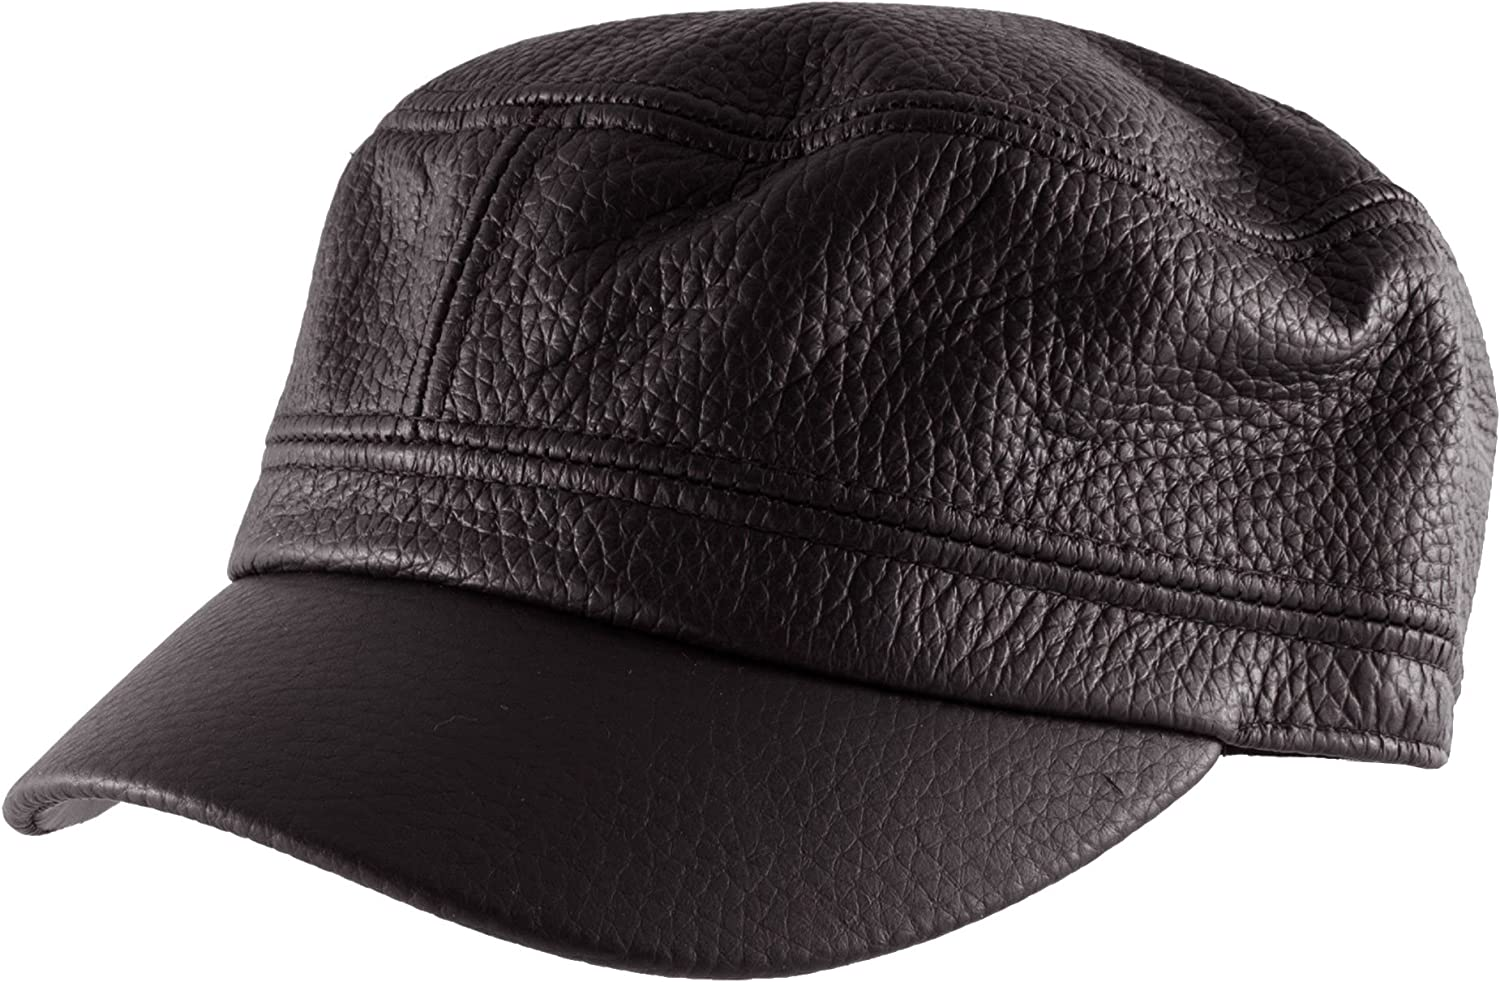 e59a17ddb0858c Morehats Genuine Leather Military Cadet Cap Army Camo Adjustable Hat Hat Hat  (Small Brown) 5752db